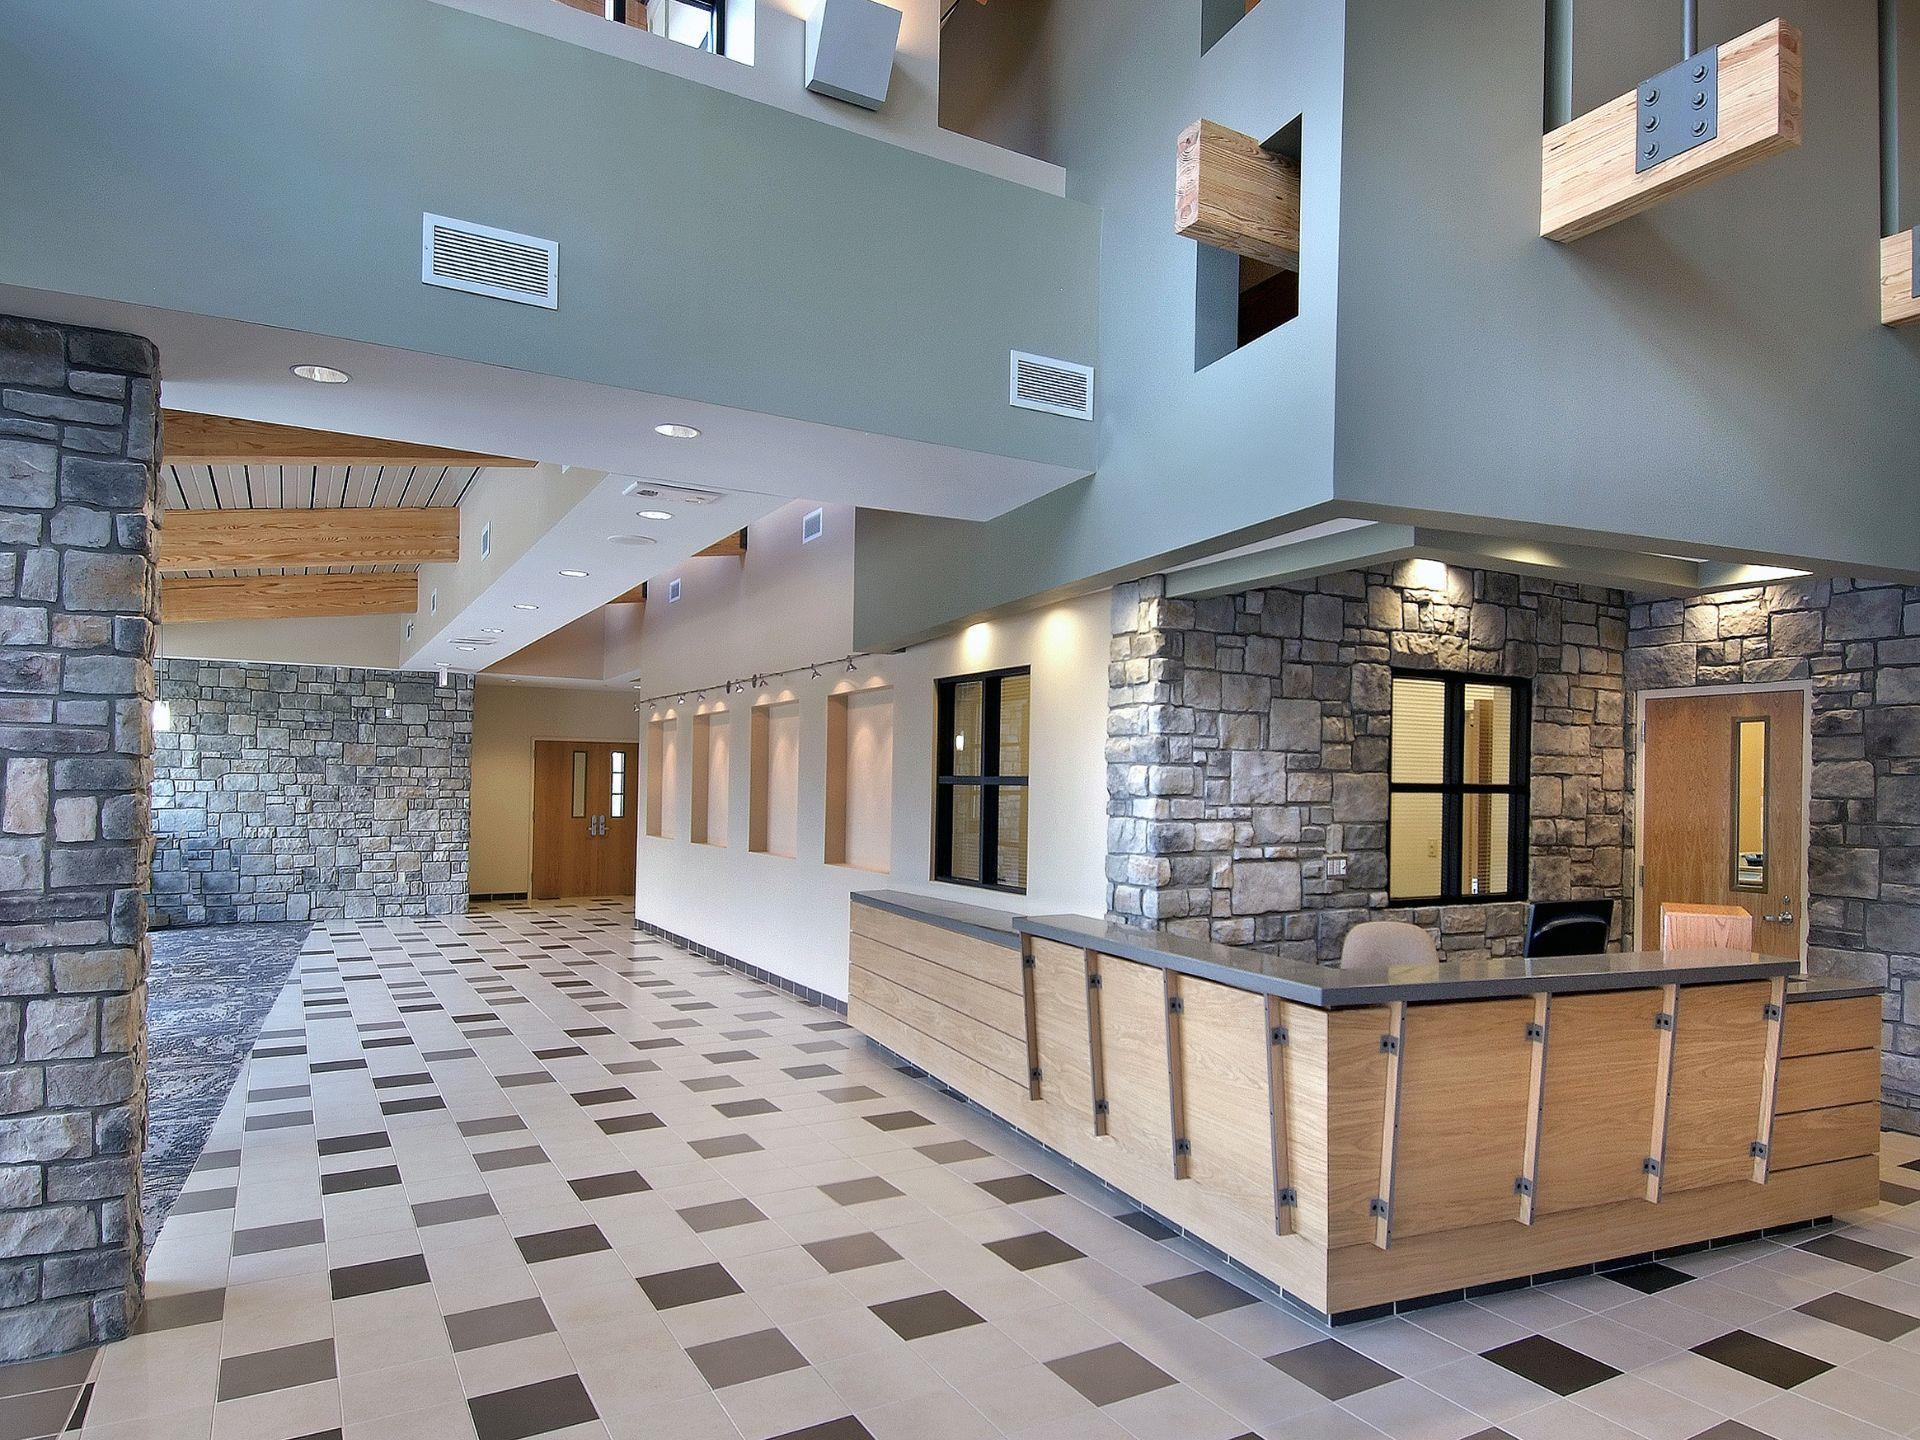 Interior photos of wood front desk surrounded by stone walls and open atrium